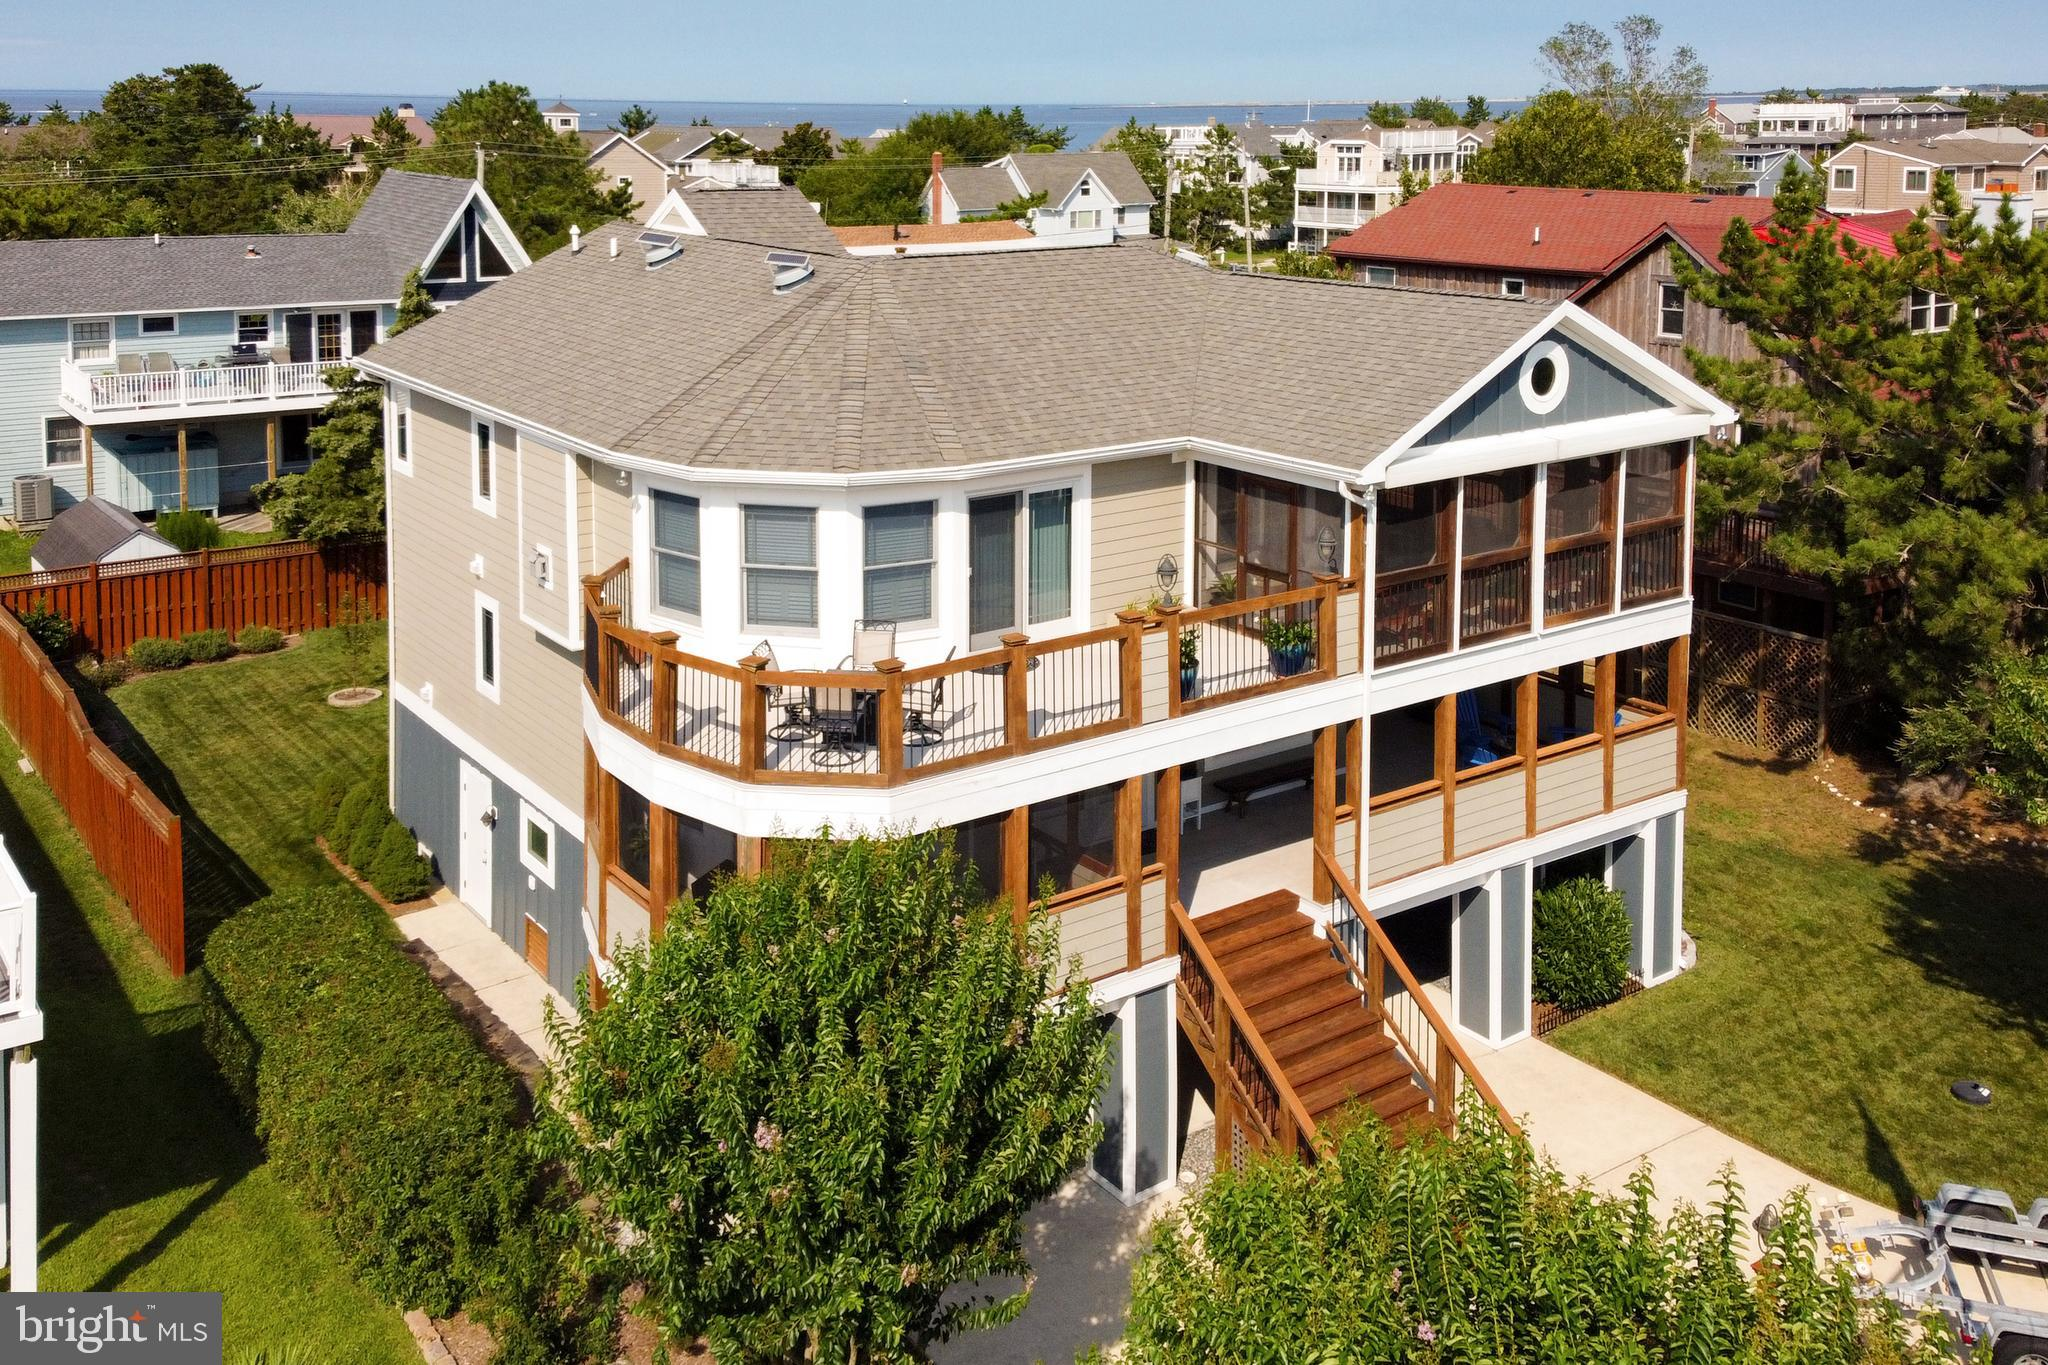 WATER VIEWS AND ROOM FOR A POOL IN THIS UNIQUE LEWES BEACH ENCLAVE. Pick your perch: rooftop deck, wraparound porch, or sands of Lewes Beach! Well-equipped coastal home delivers water views, bay breezes, and updates to seal the deal. Welcome to solid construction & room for relaxing featuring 4+ bedrooms & 2.5 baths, including an owner suite on the second level with private screened porch access, 2 walk-in closets, and luxe en-suite bath. Entertaining is easy with a modern open kitchen, dining, living design on the top level, along with an office/5th bedroom accessible through pocket doors just off the living room. The ground level completes the package with workshop, outdoor shower, spacious fenced-in backyard - providing room enough for a future in-ground pool - and plenty of storage for beach & boat gear! Enjoy peace of mind from  conscientious build choices such as hurricane shutters, solid doors & hardie-plank siding, and a sump-pump water management system.  Located just steps away from the canal and the beach. The scenic Rehoboth-Lewes Canal and Delaware Bay await you; call & schedule your showing today! *Seller hired architect to create plans for redesign and renovation of exterior and top floor.